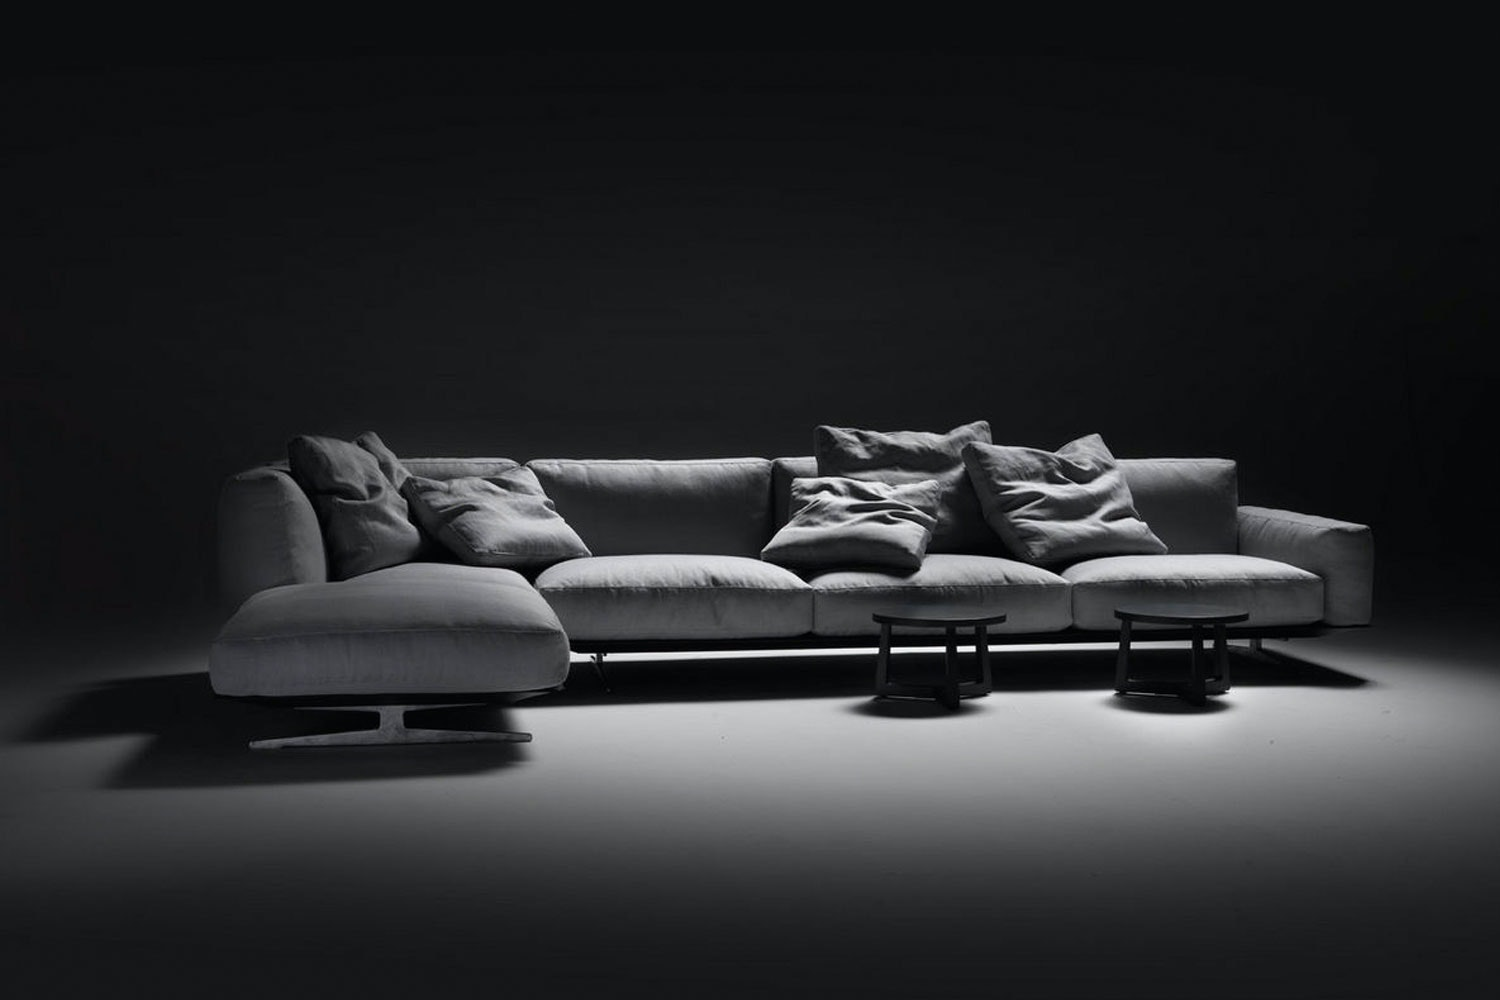 SOFTDREAM sofa